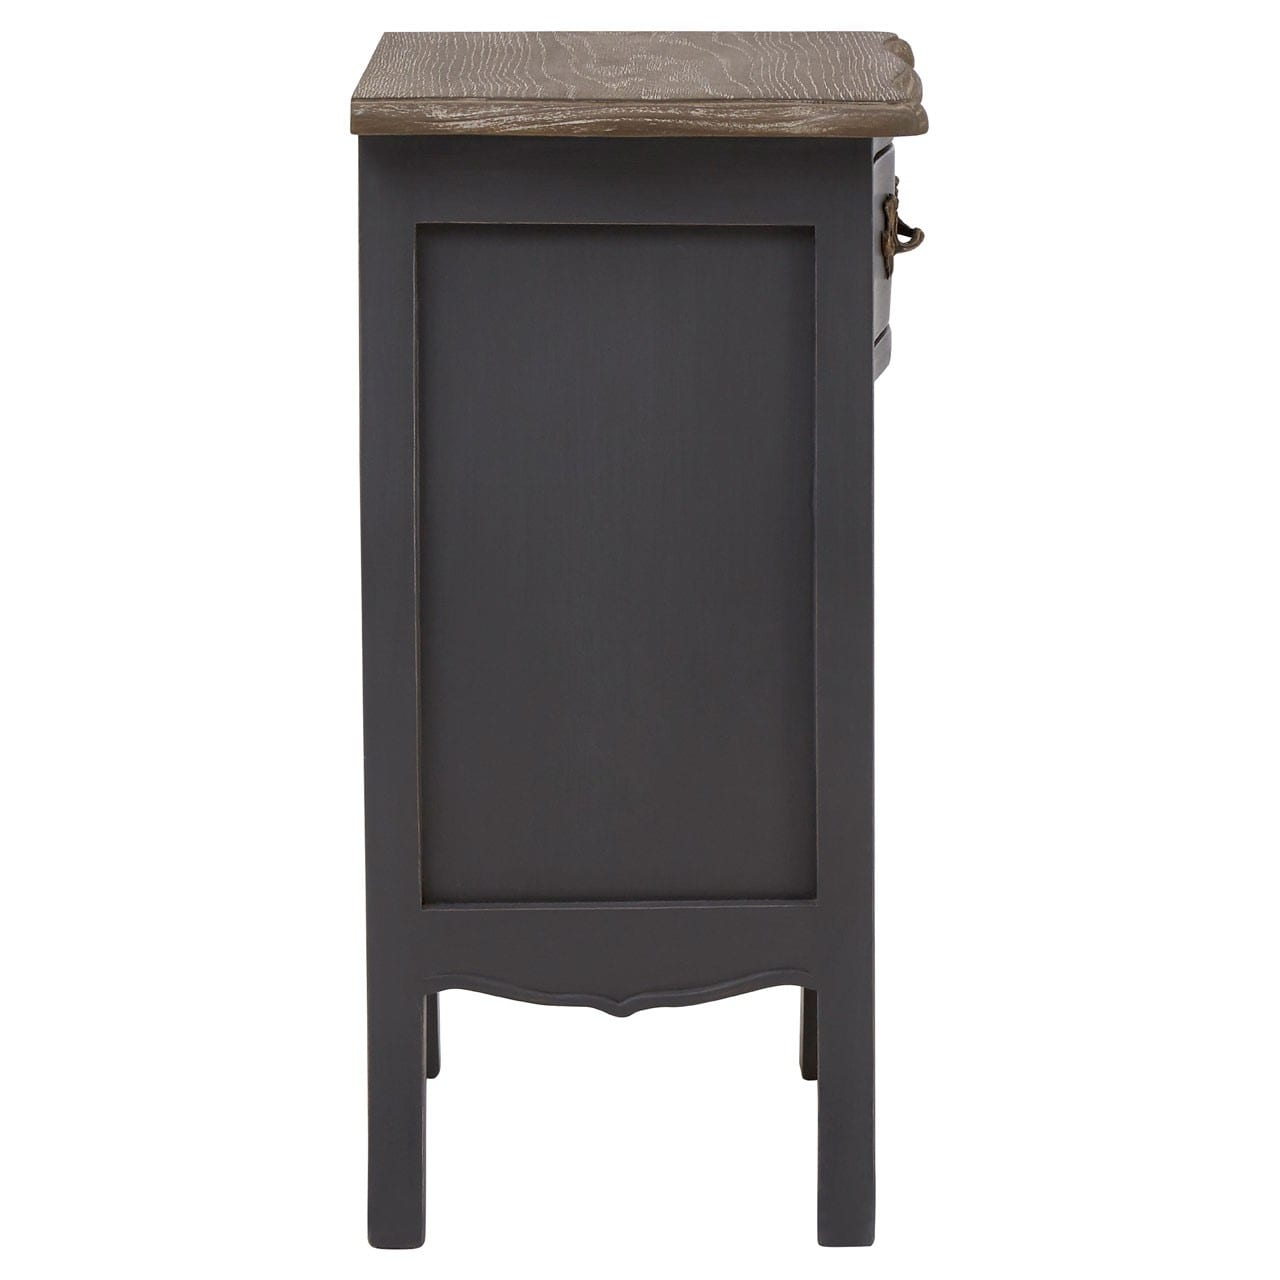 Bourges 1 Drawer 1 Shelf Grey Bedside Cabinet